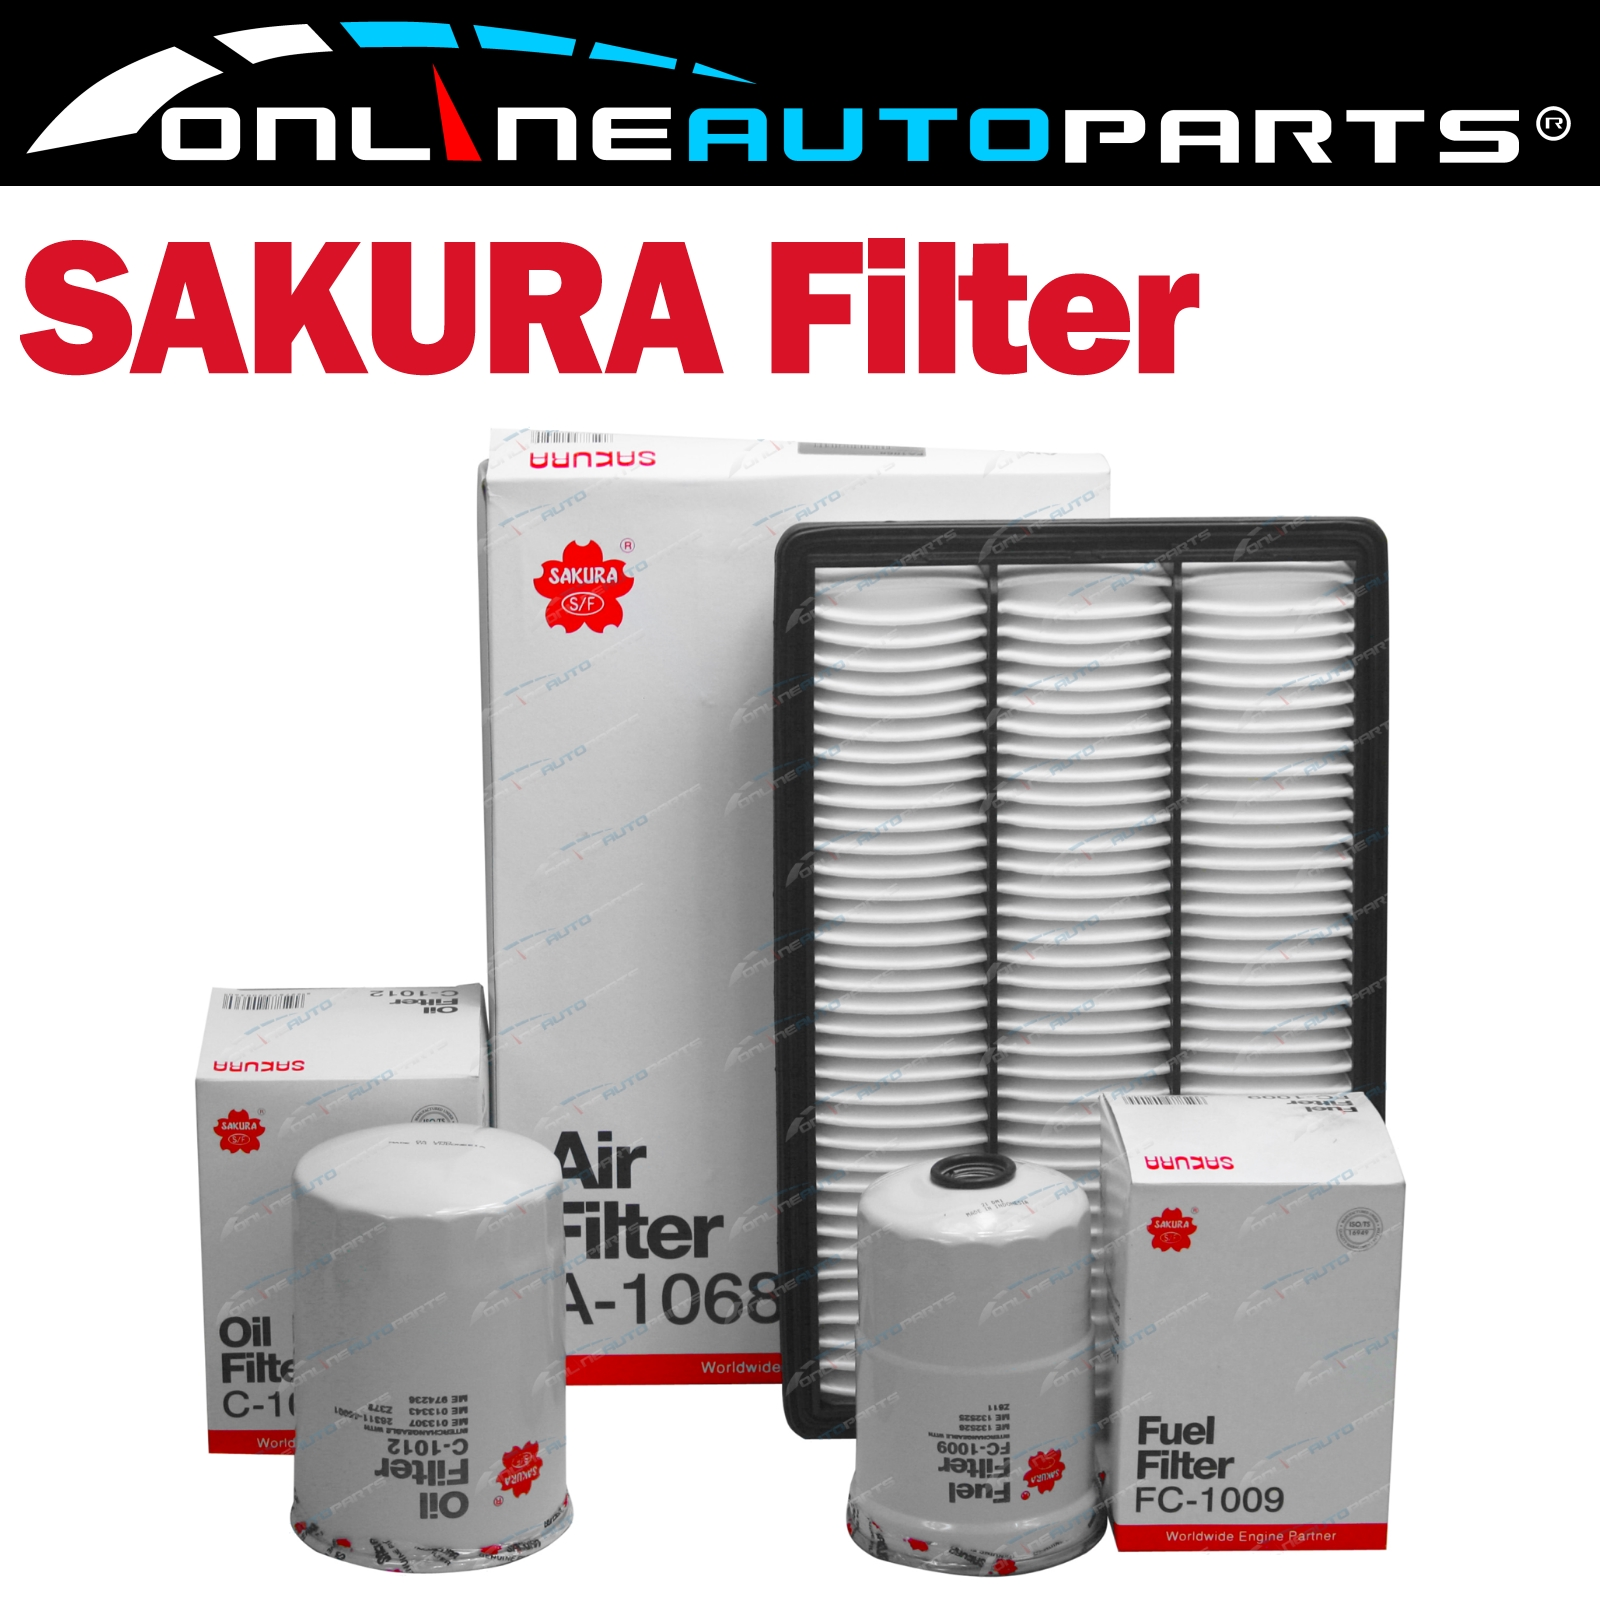 Air Oil Fuel Filter Service Kit for Pajero 4M41-T Turbo Diesel 3.2L NM